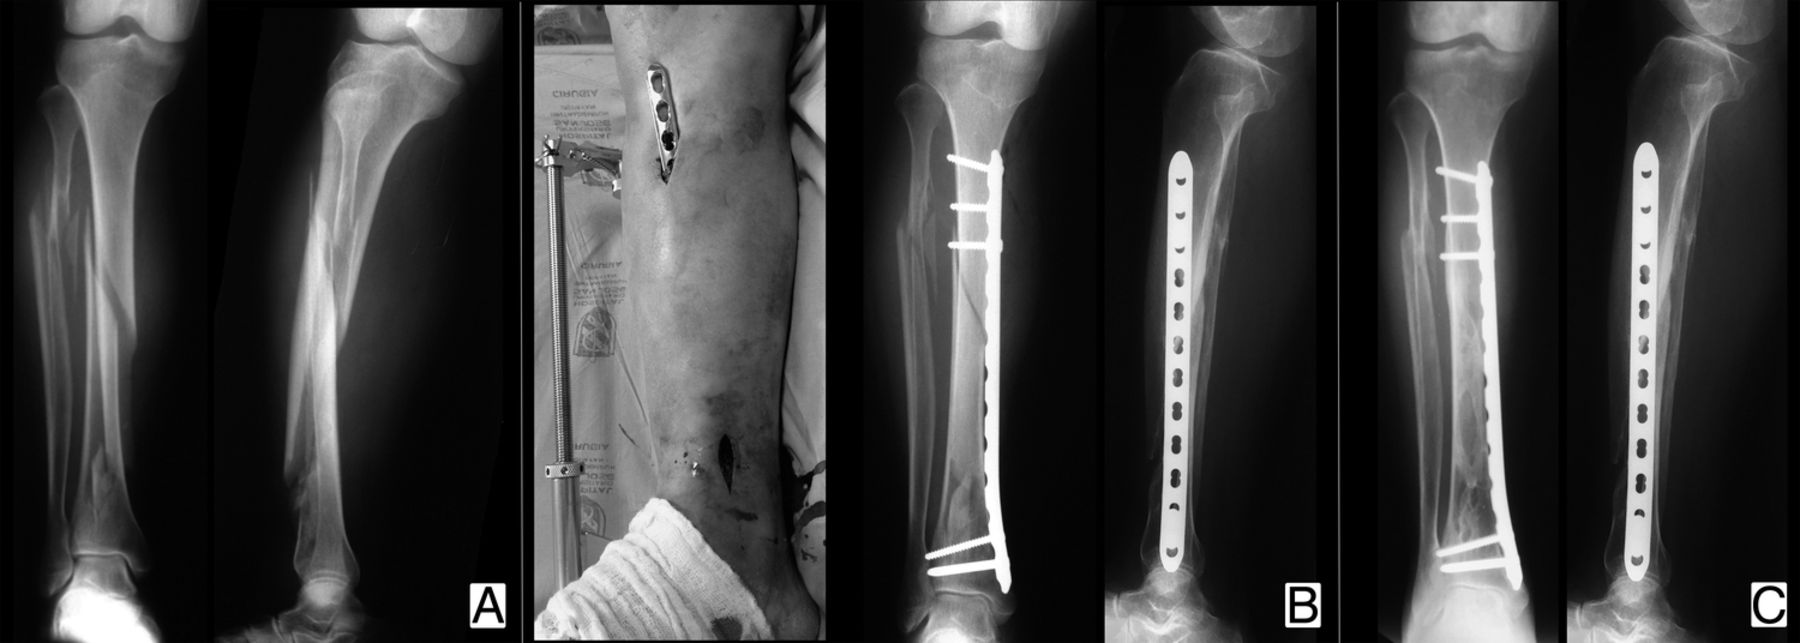 Management Of Diaphyseal Tibial Fractures By Plate